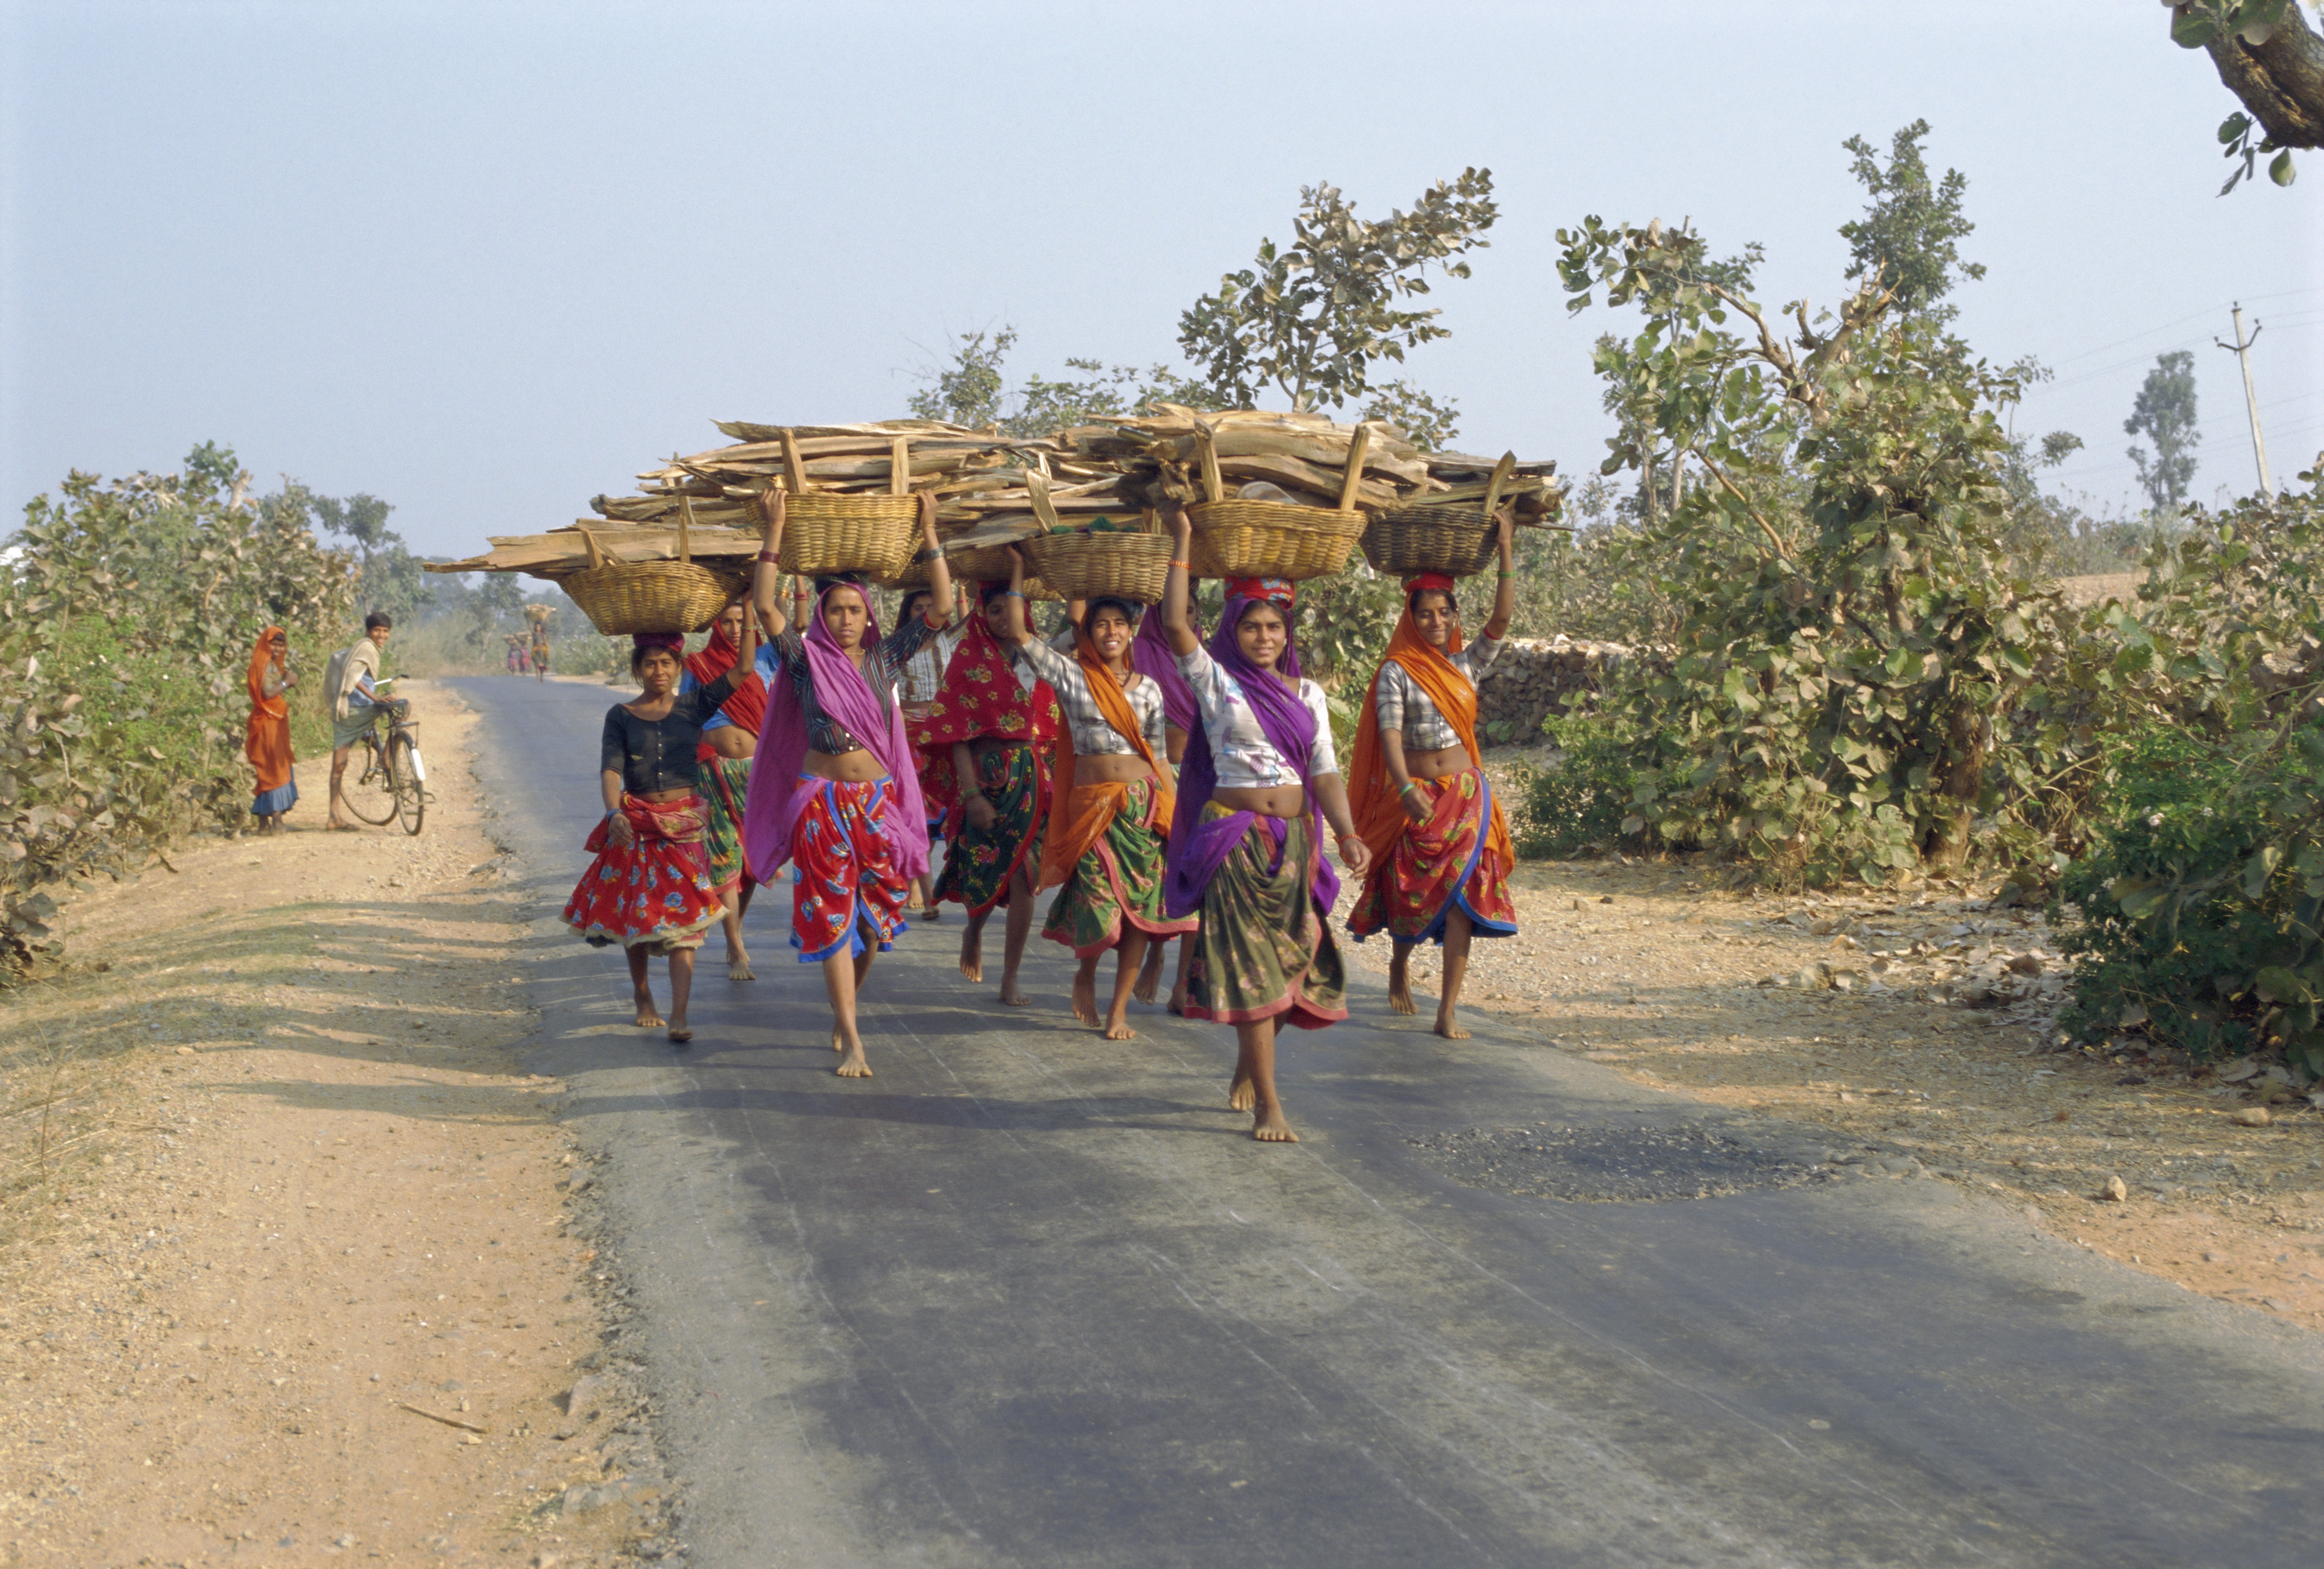 Women in  Rajasthan, India, in saris spend time searching for, collecting and carrying firewood before they can cook food. Photo © Robert Harding/Robert Harding World Imagery/Corbis